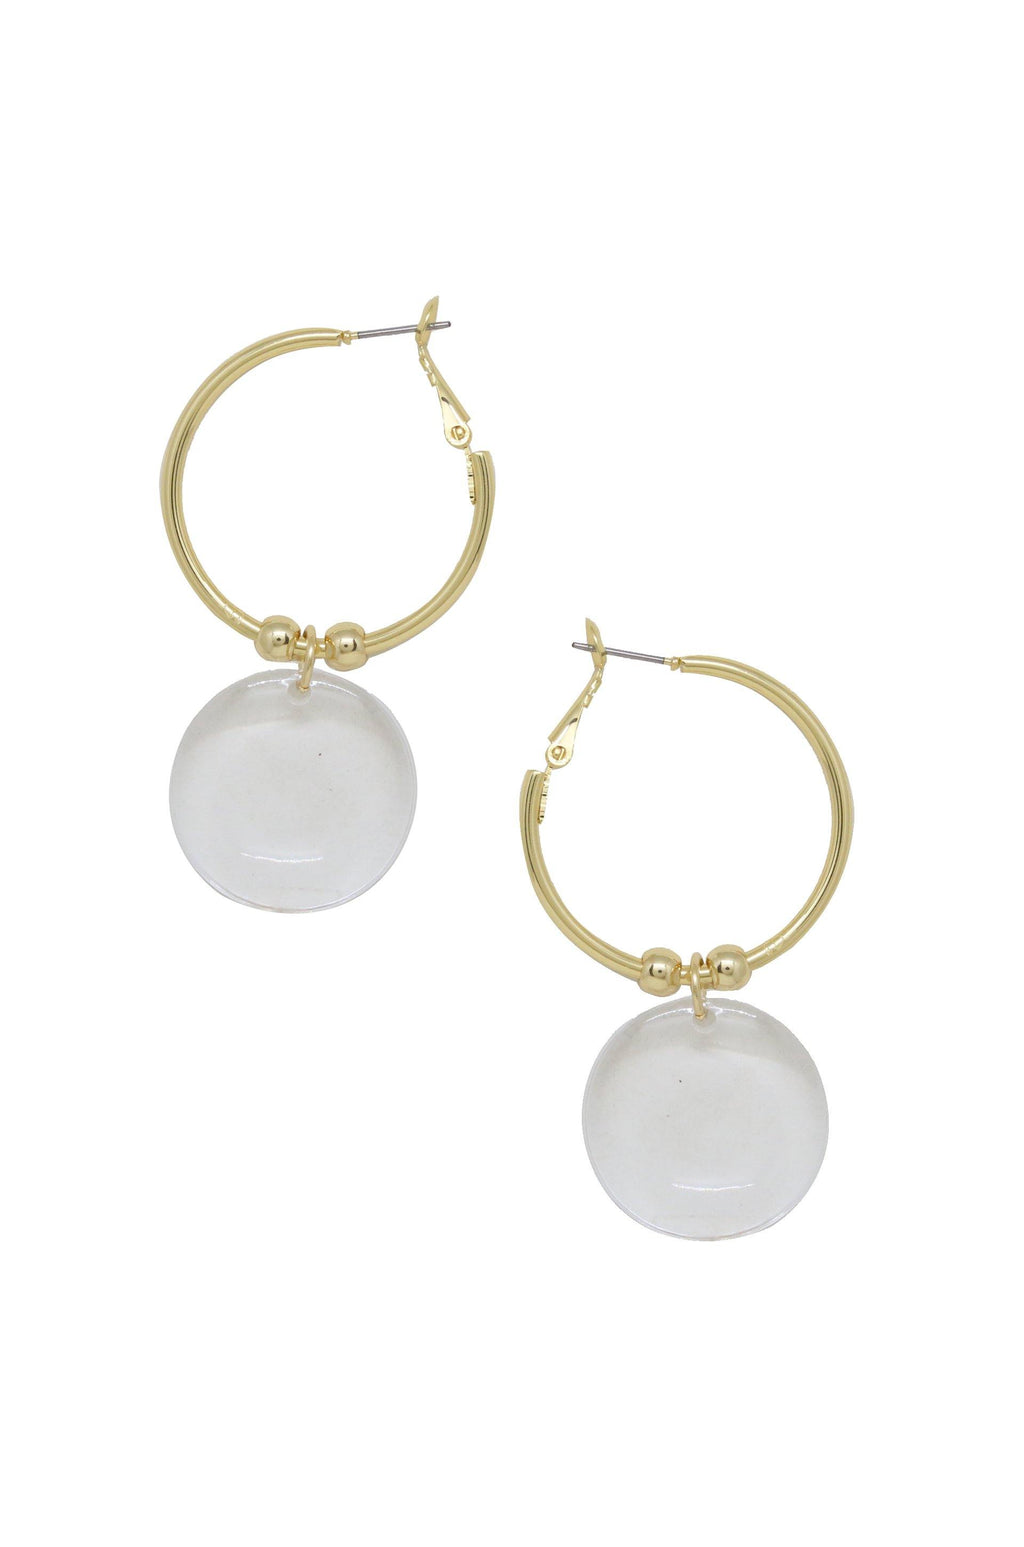 Clear Resin Circle Hoop 18k Gold Plated Earrings